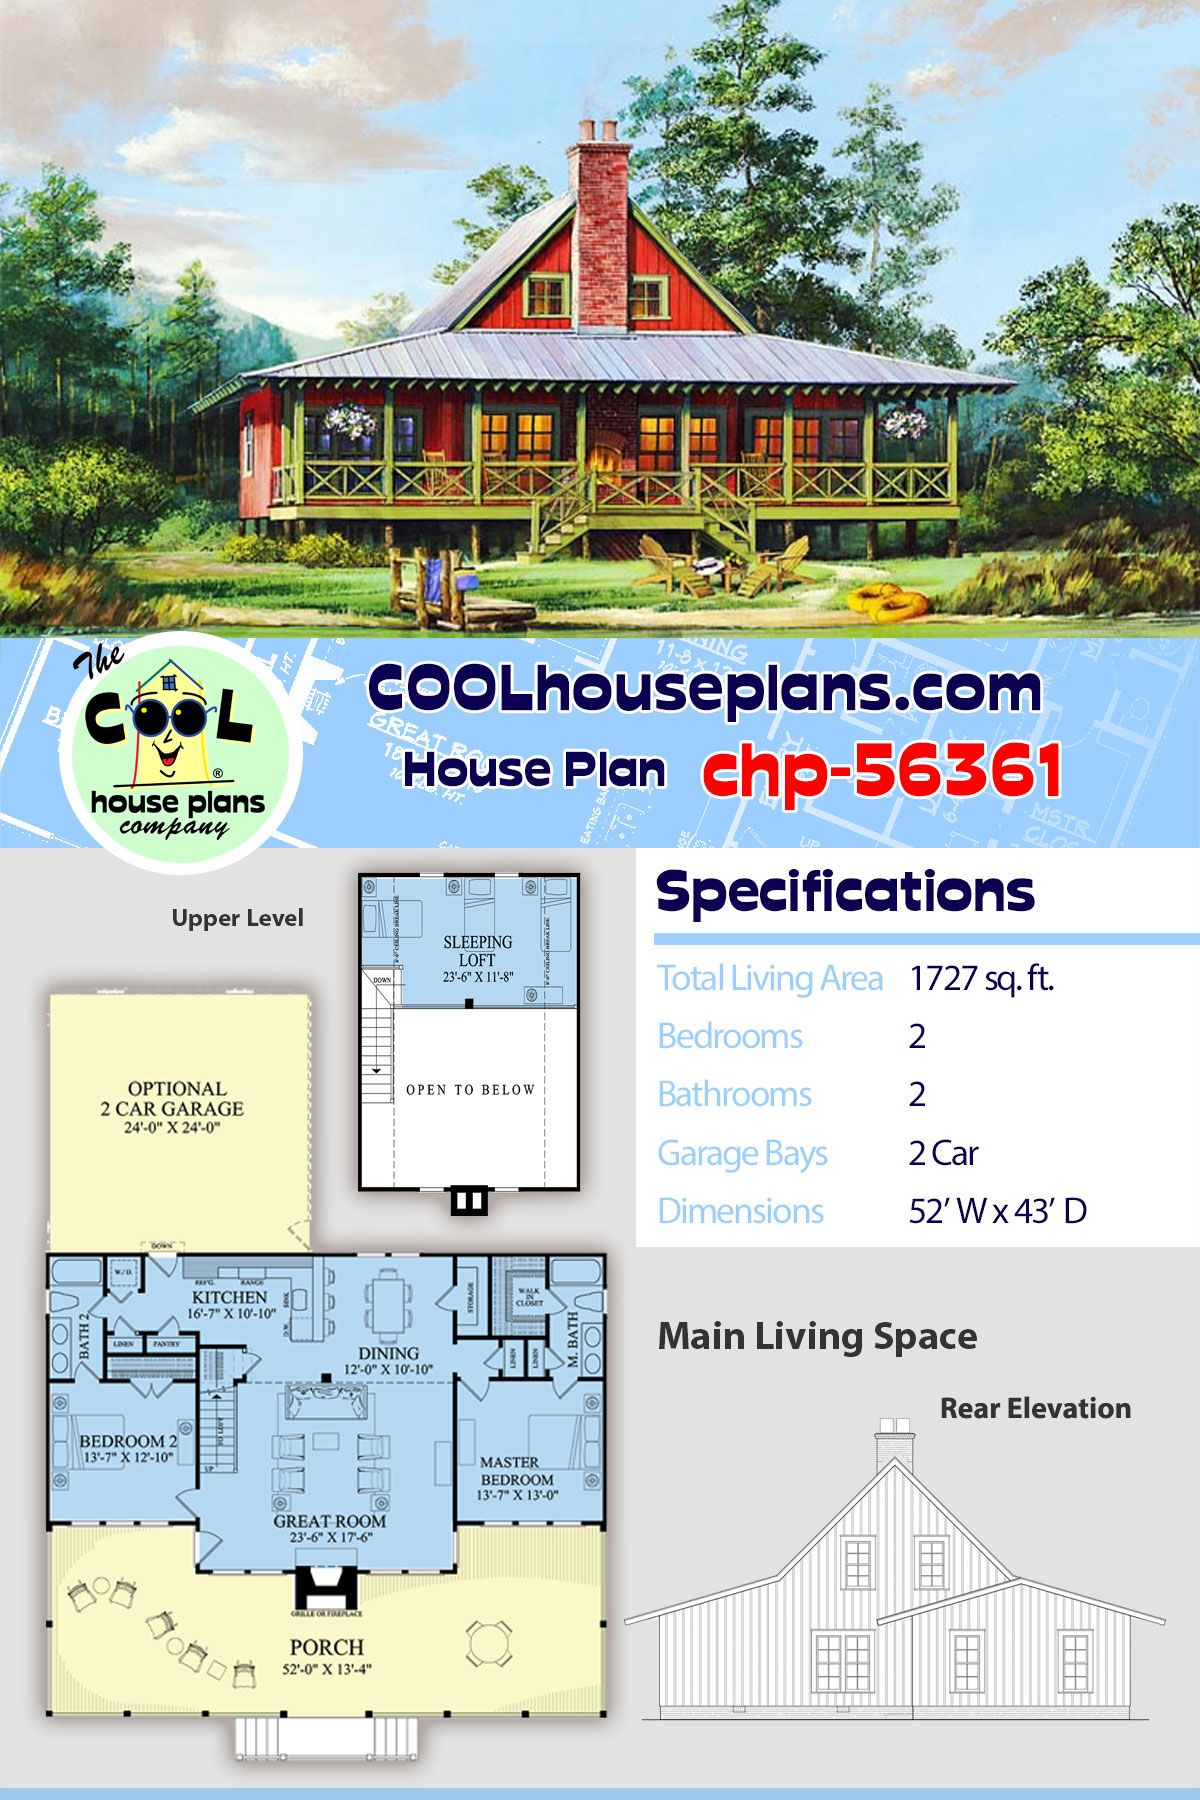 Southern Style House Plan 86202 With 2 Bed 2 Bath 2 Car Garage Cabin Plans Southern Style House Plans Cabin House Plans